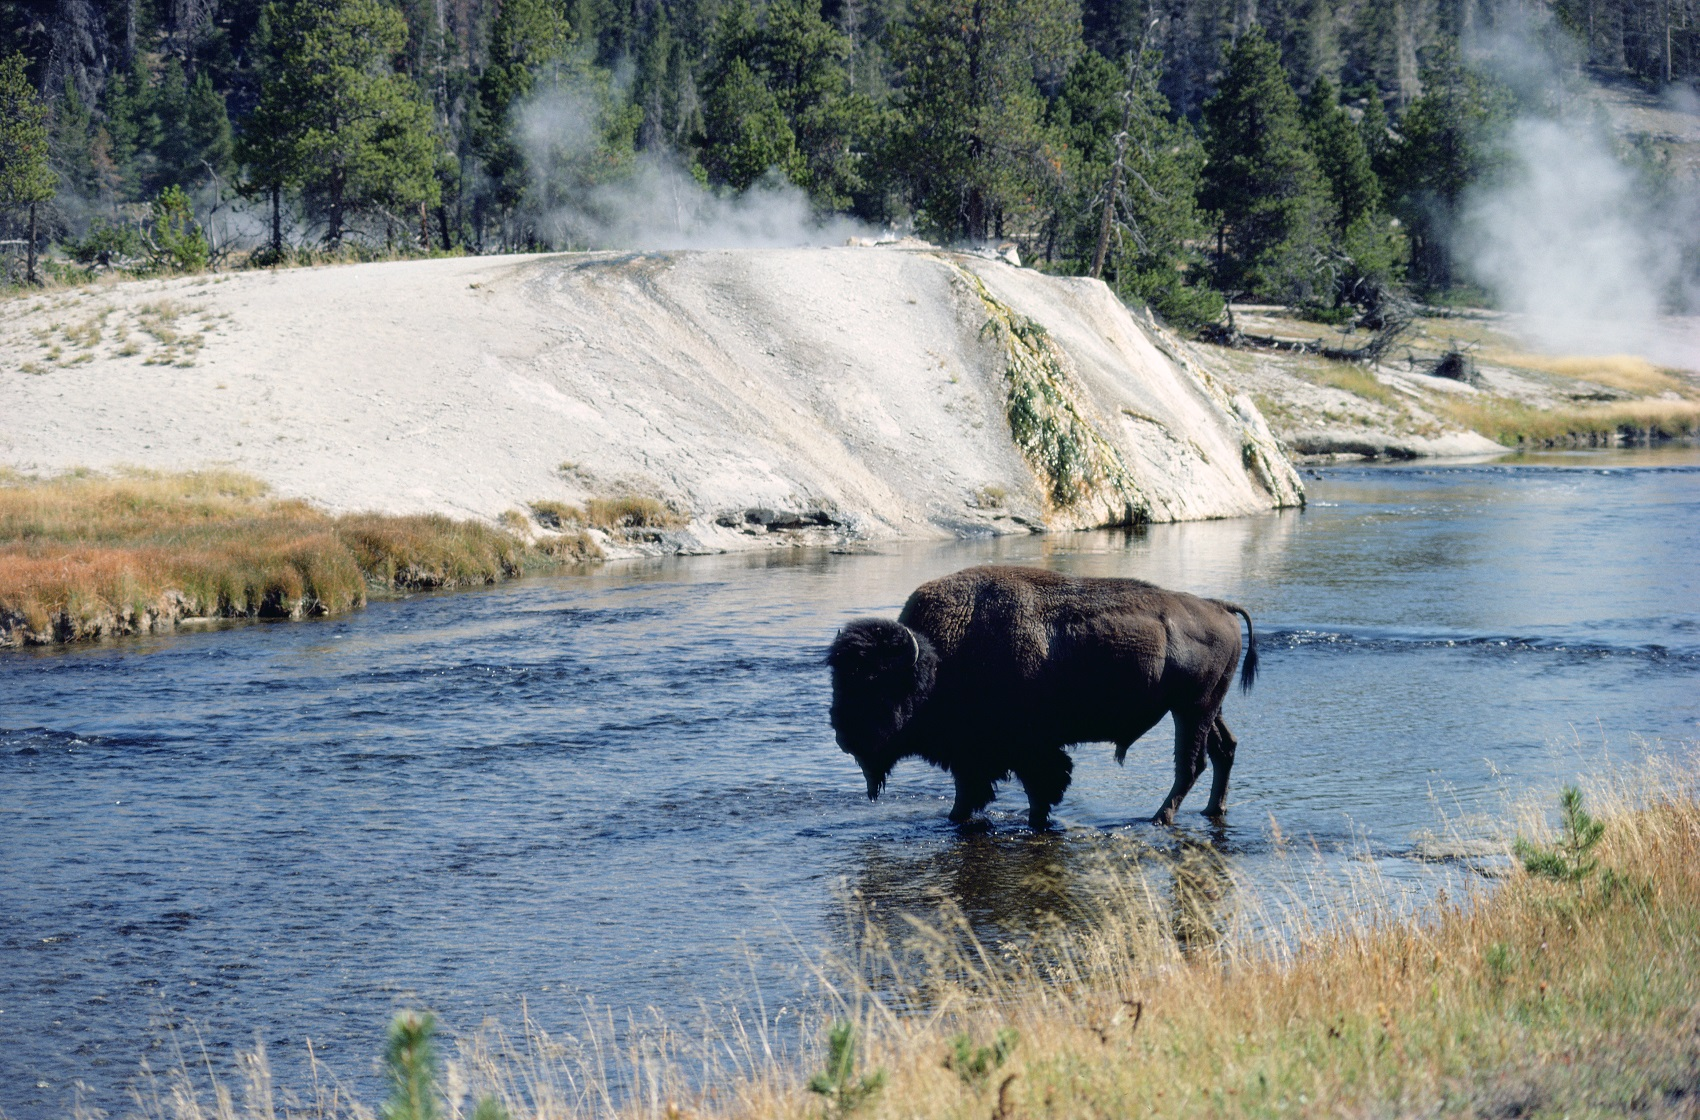 Bison at Yellowstone National Park